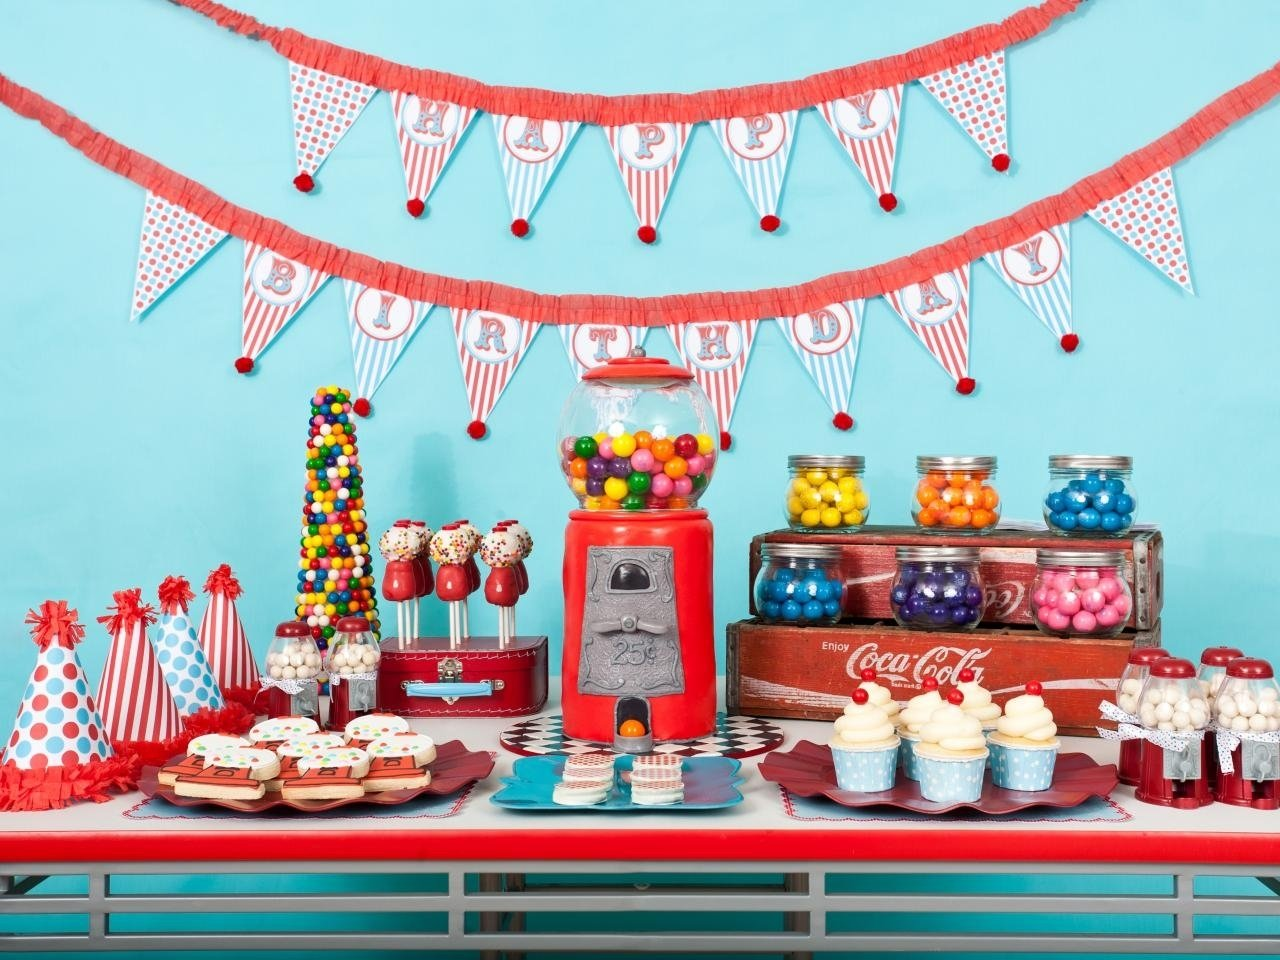 10 Stylish Birthday Party Ideas For Kids diy favors decorations kids birthday parties entertaining tierra 1 2020